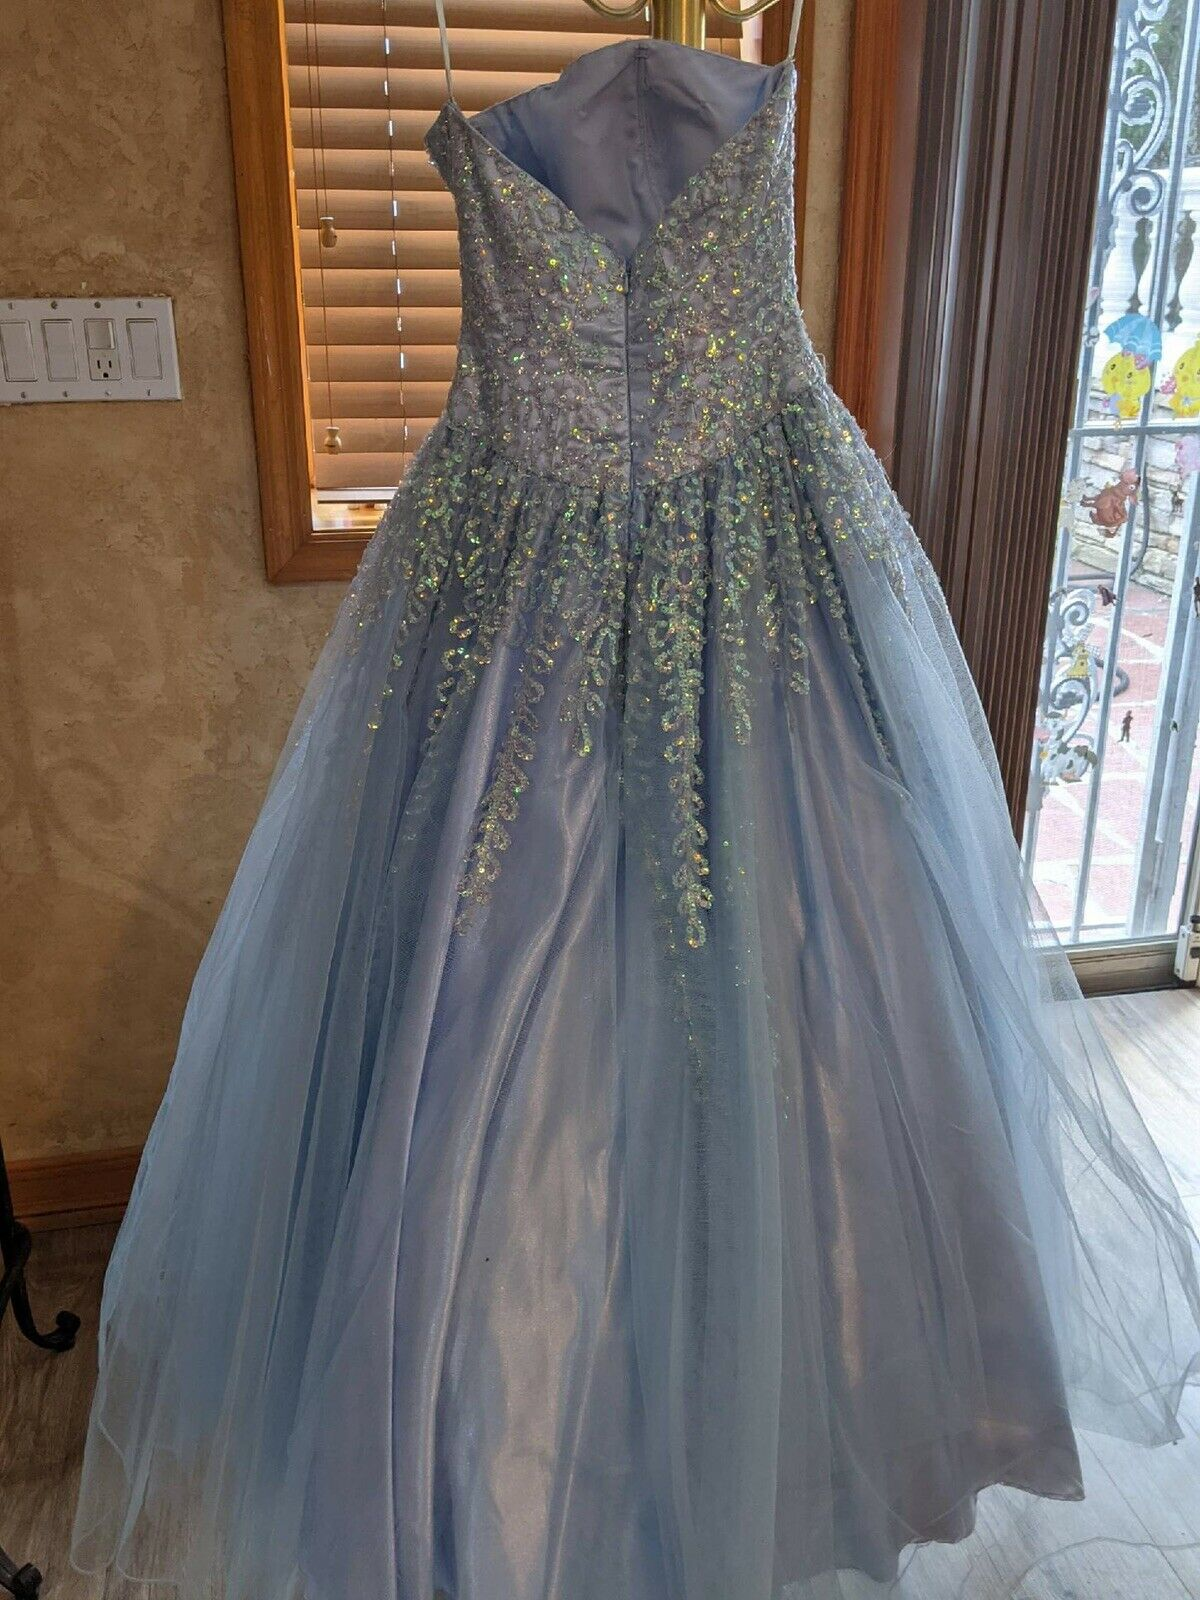 cinderella style  ball gown - image 1